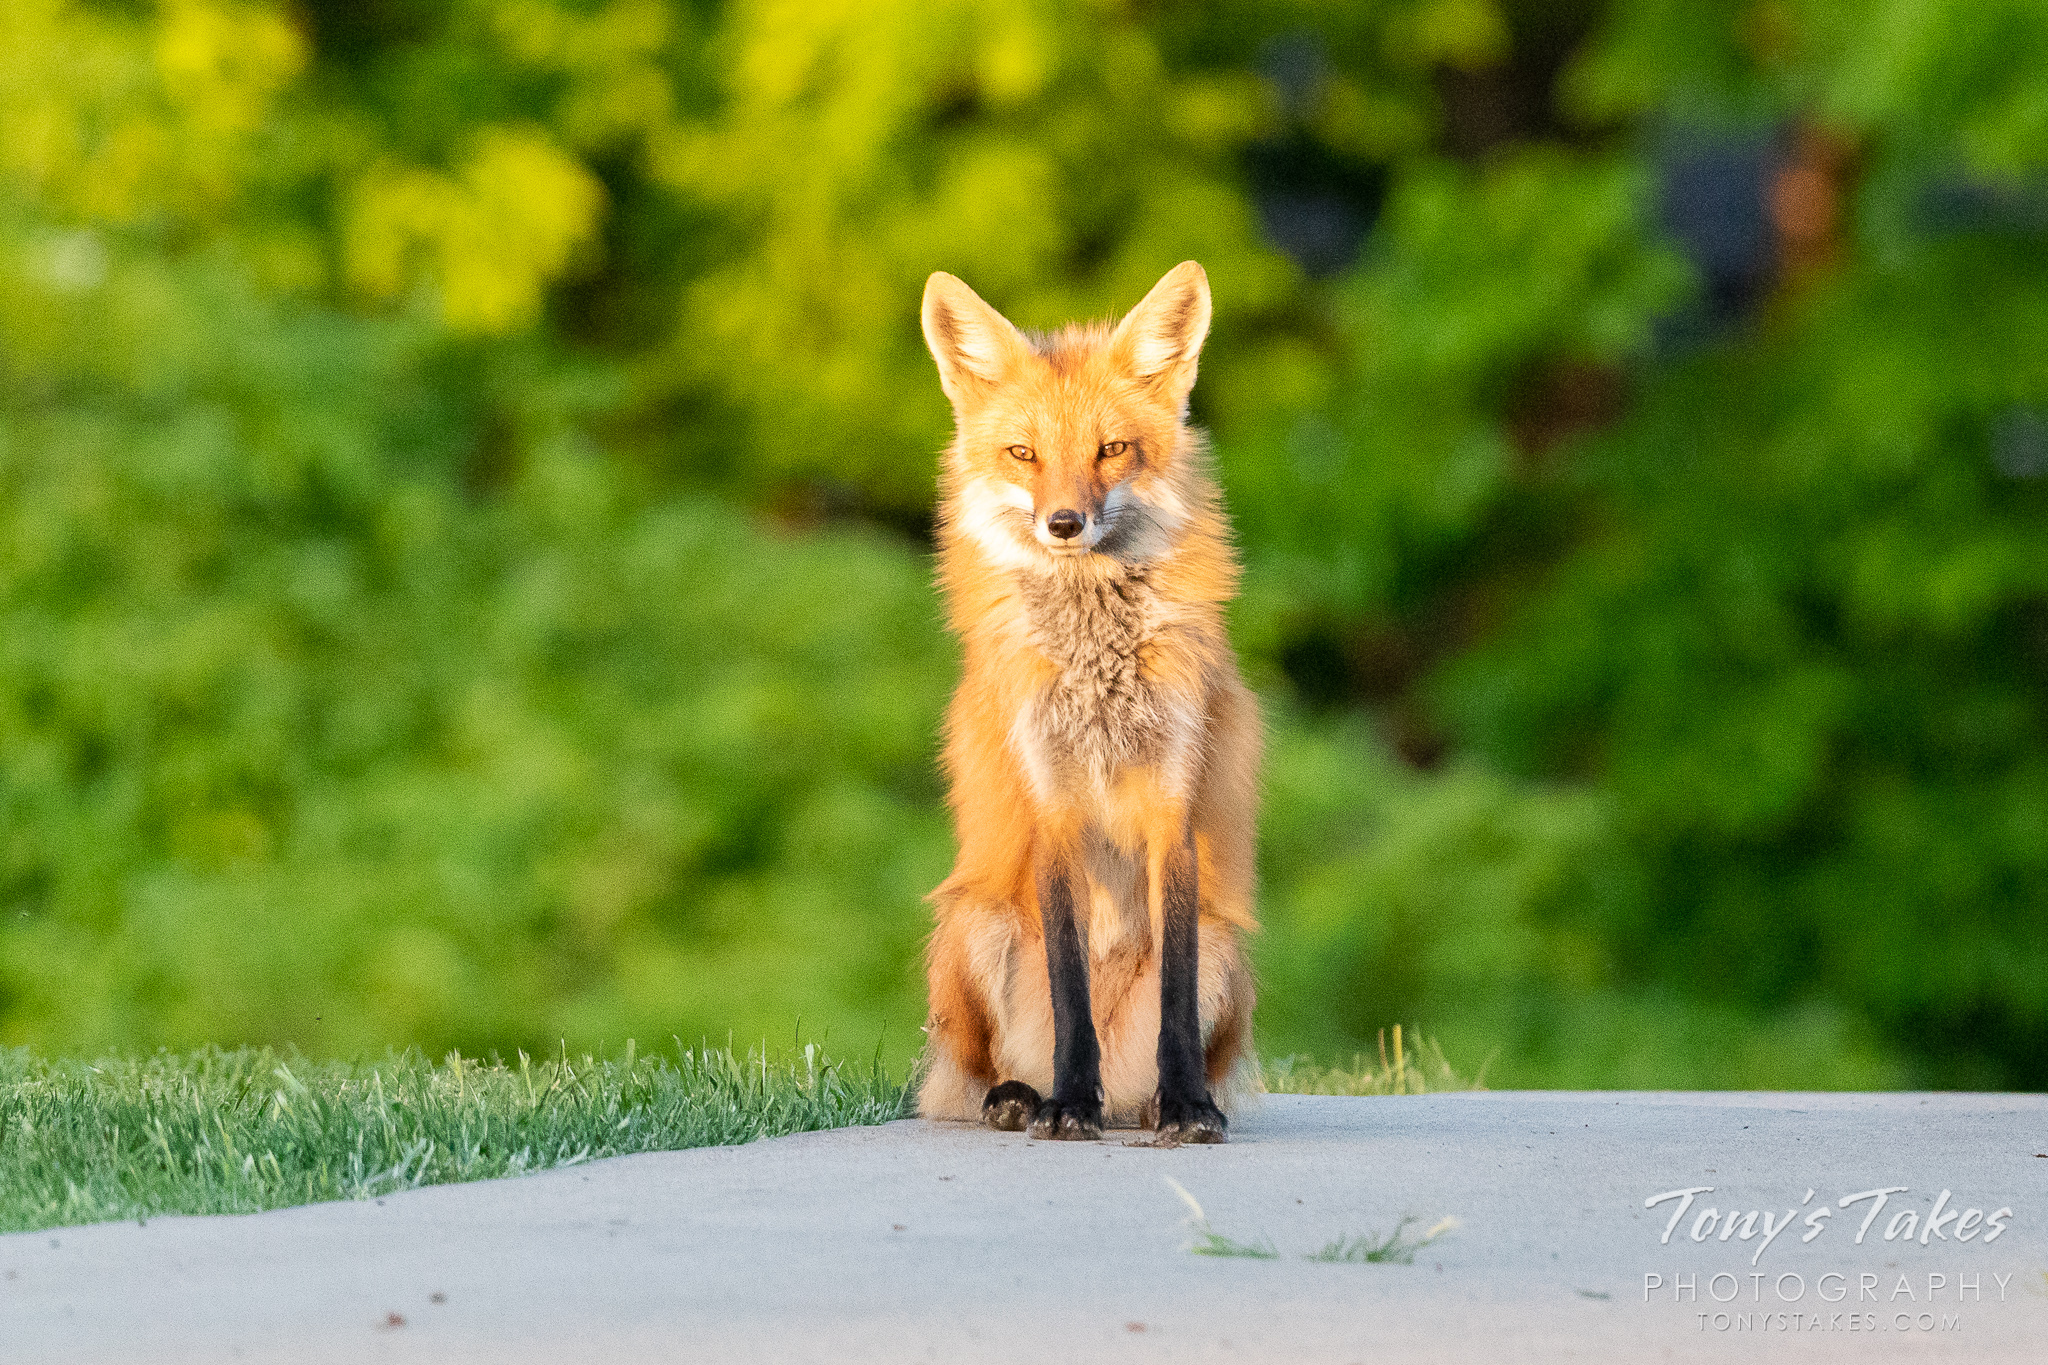 A red fox vixen enjoys a quiet evening in the suburbs. (© Tony's Takes)